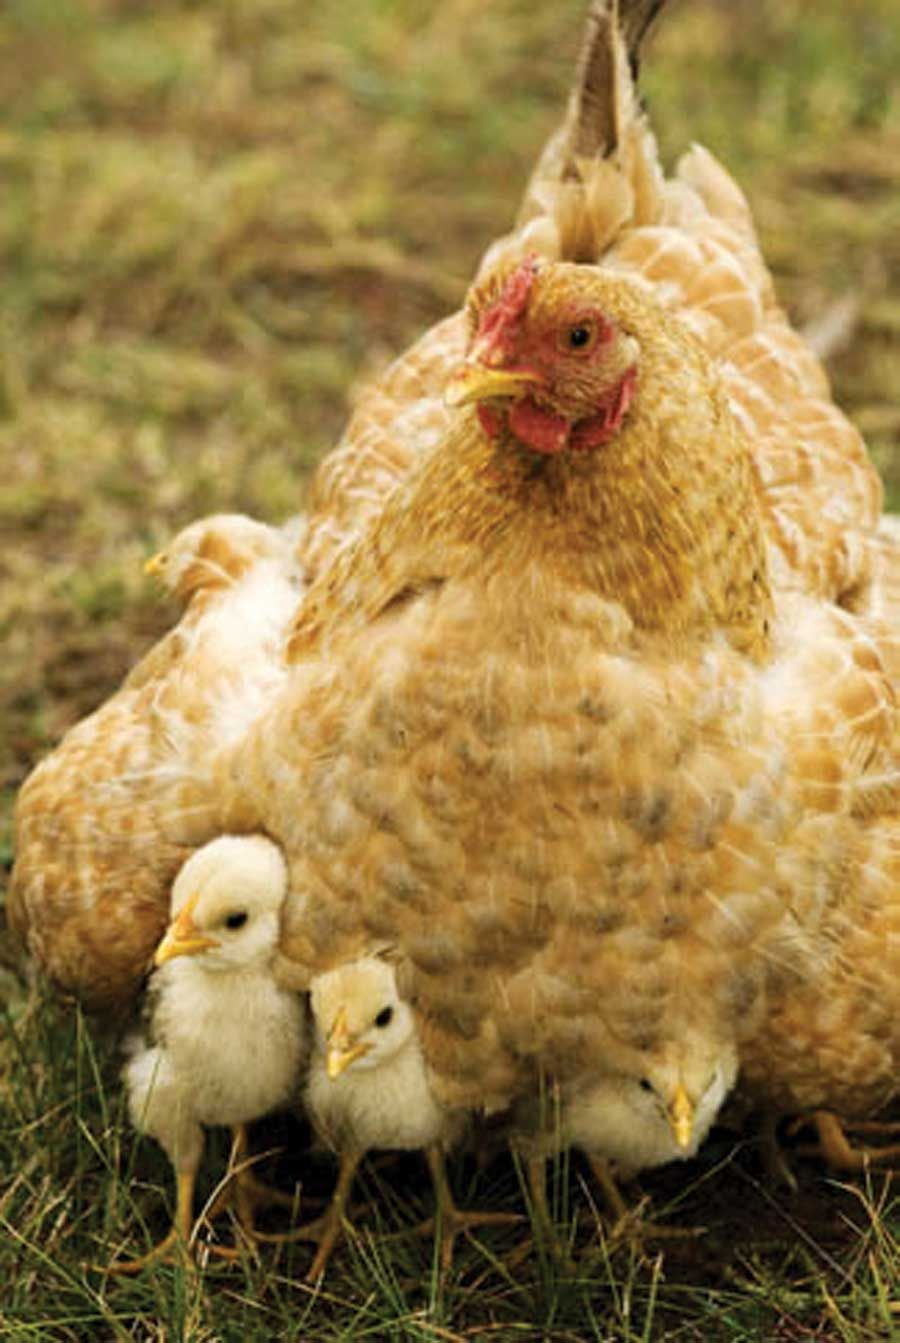 A mother hen and her baby chicks.